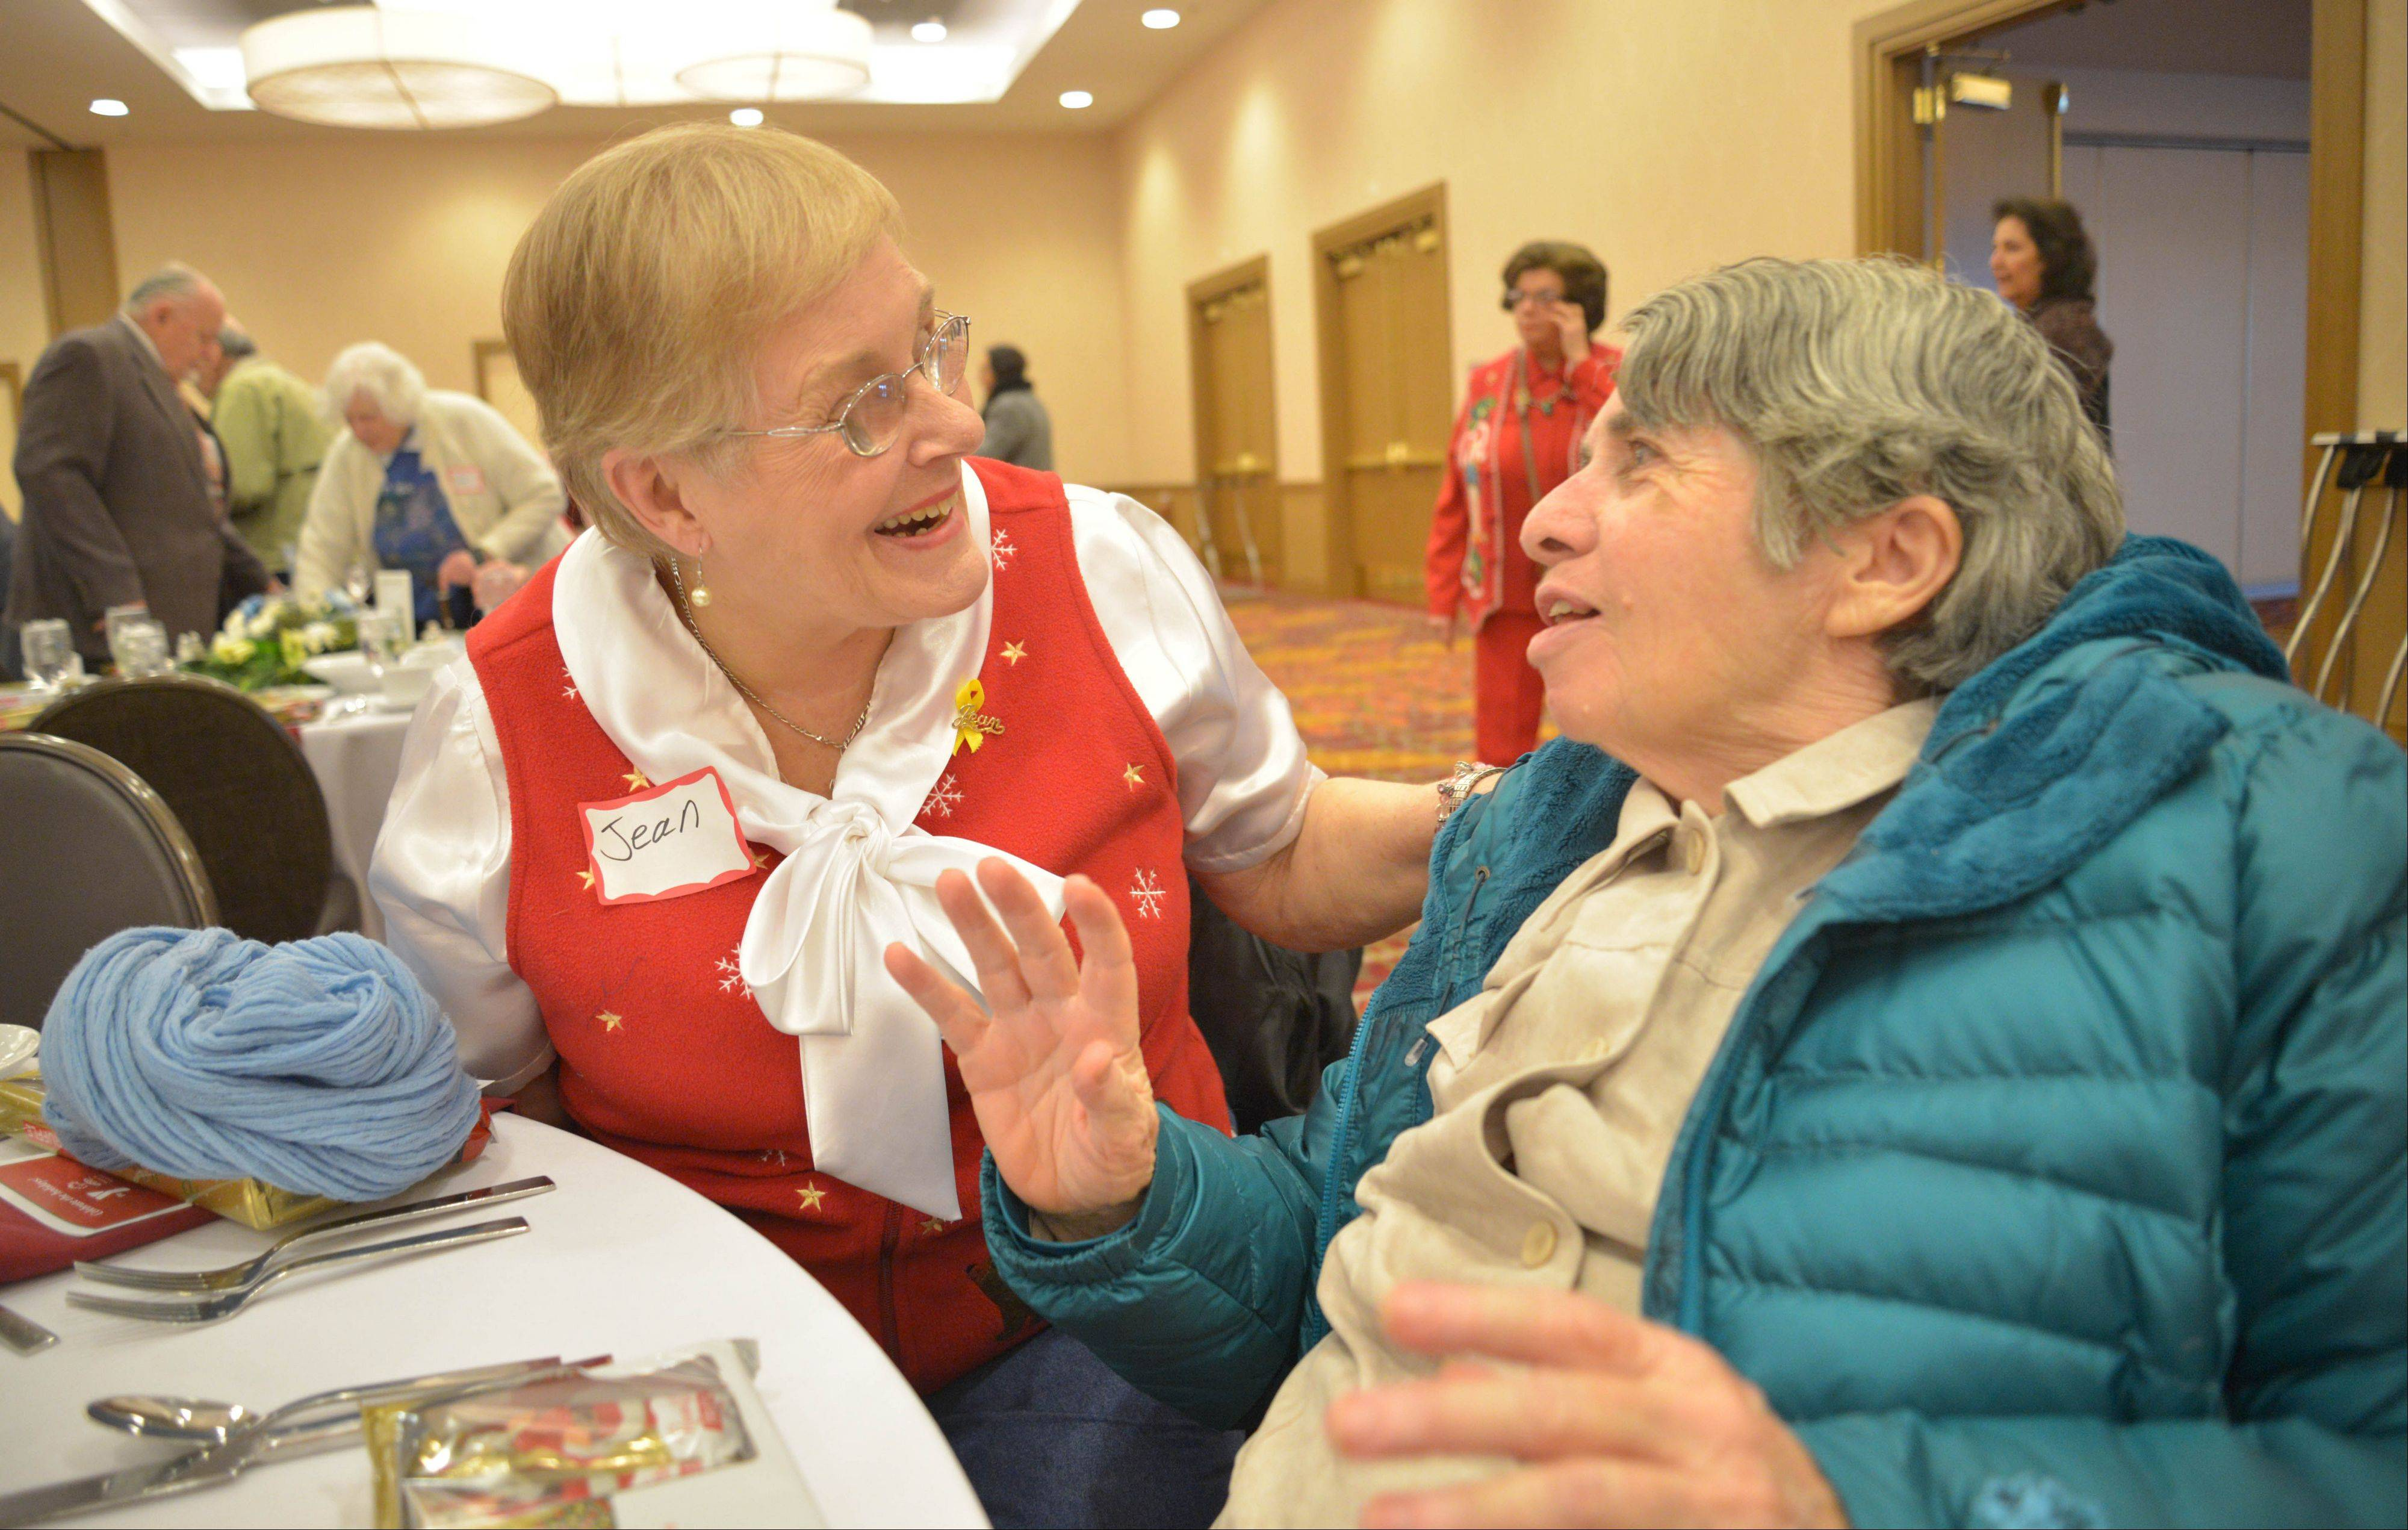 Jean Lundquist of Aurora, left, and Alice Glavin of Naperville chat over lunch Wednesday at the Marriott in Naperville.